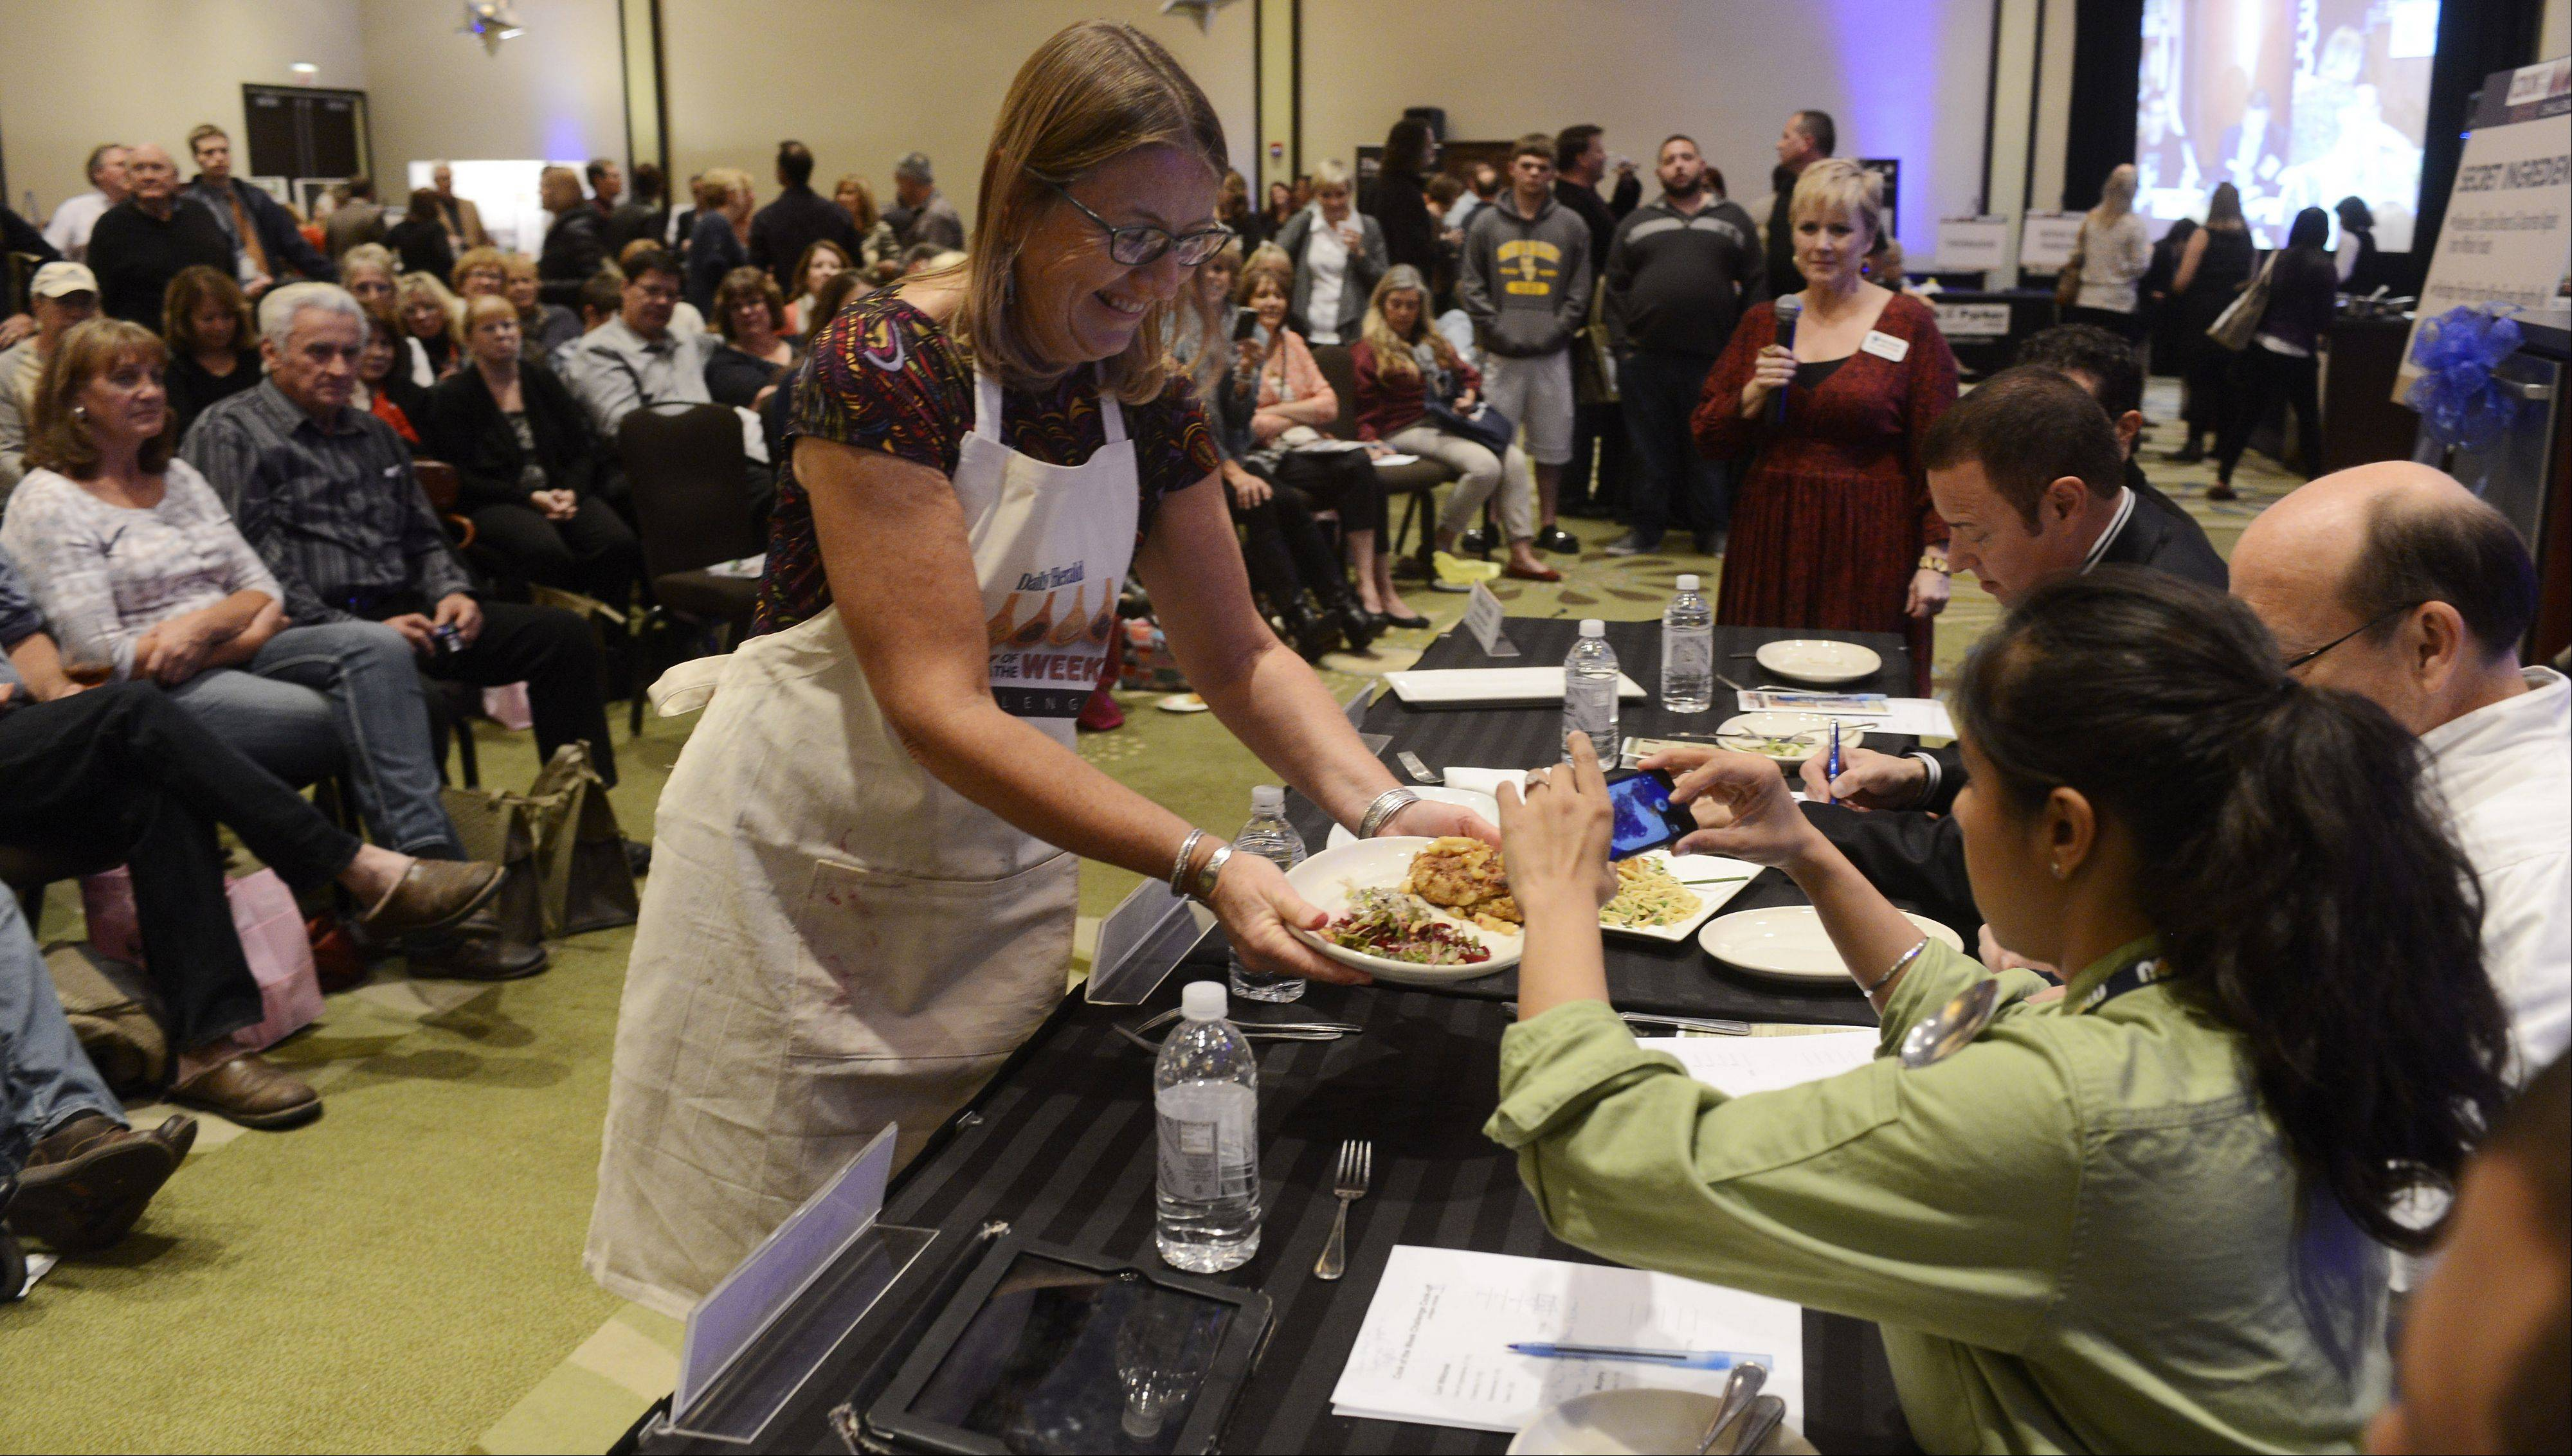 Christine Murphy of Palatine shows judges her dish during the Daily Herald Cook of the Week Cookoff finals, held at the Hyatt Regency Schaumburg Wednesday.